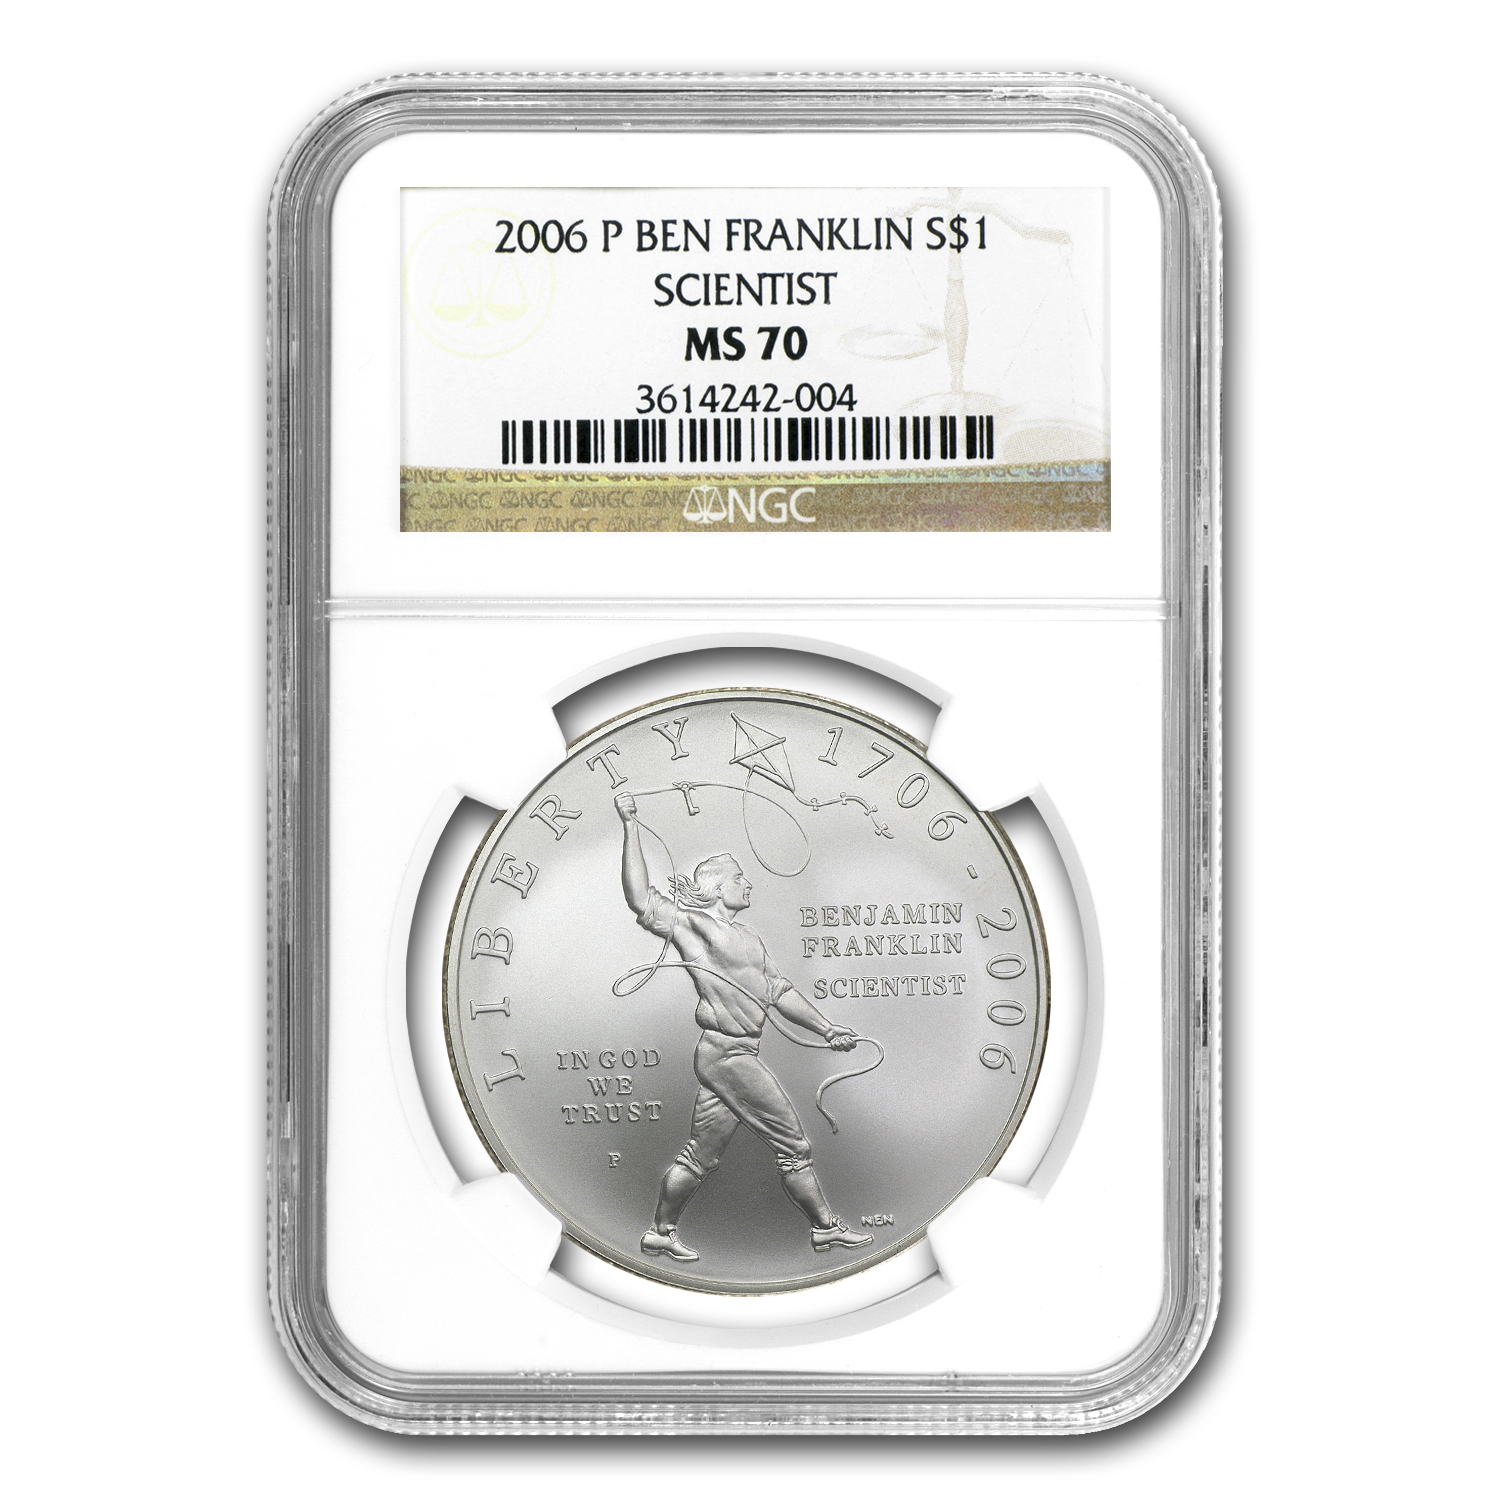 2006-P Ben Franklin Scientist $1 Silver Commem MS-70 NGC